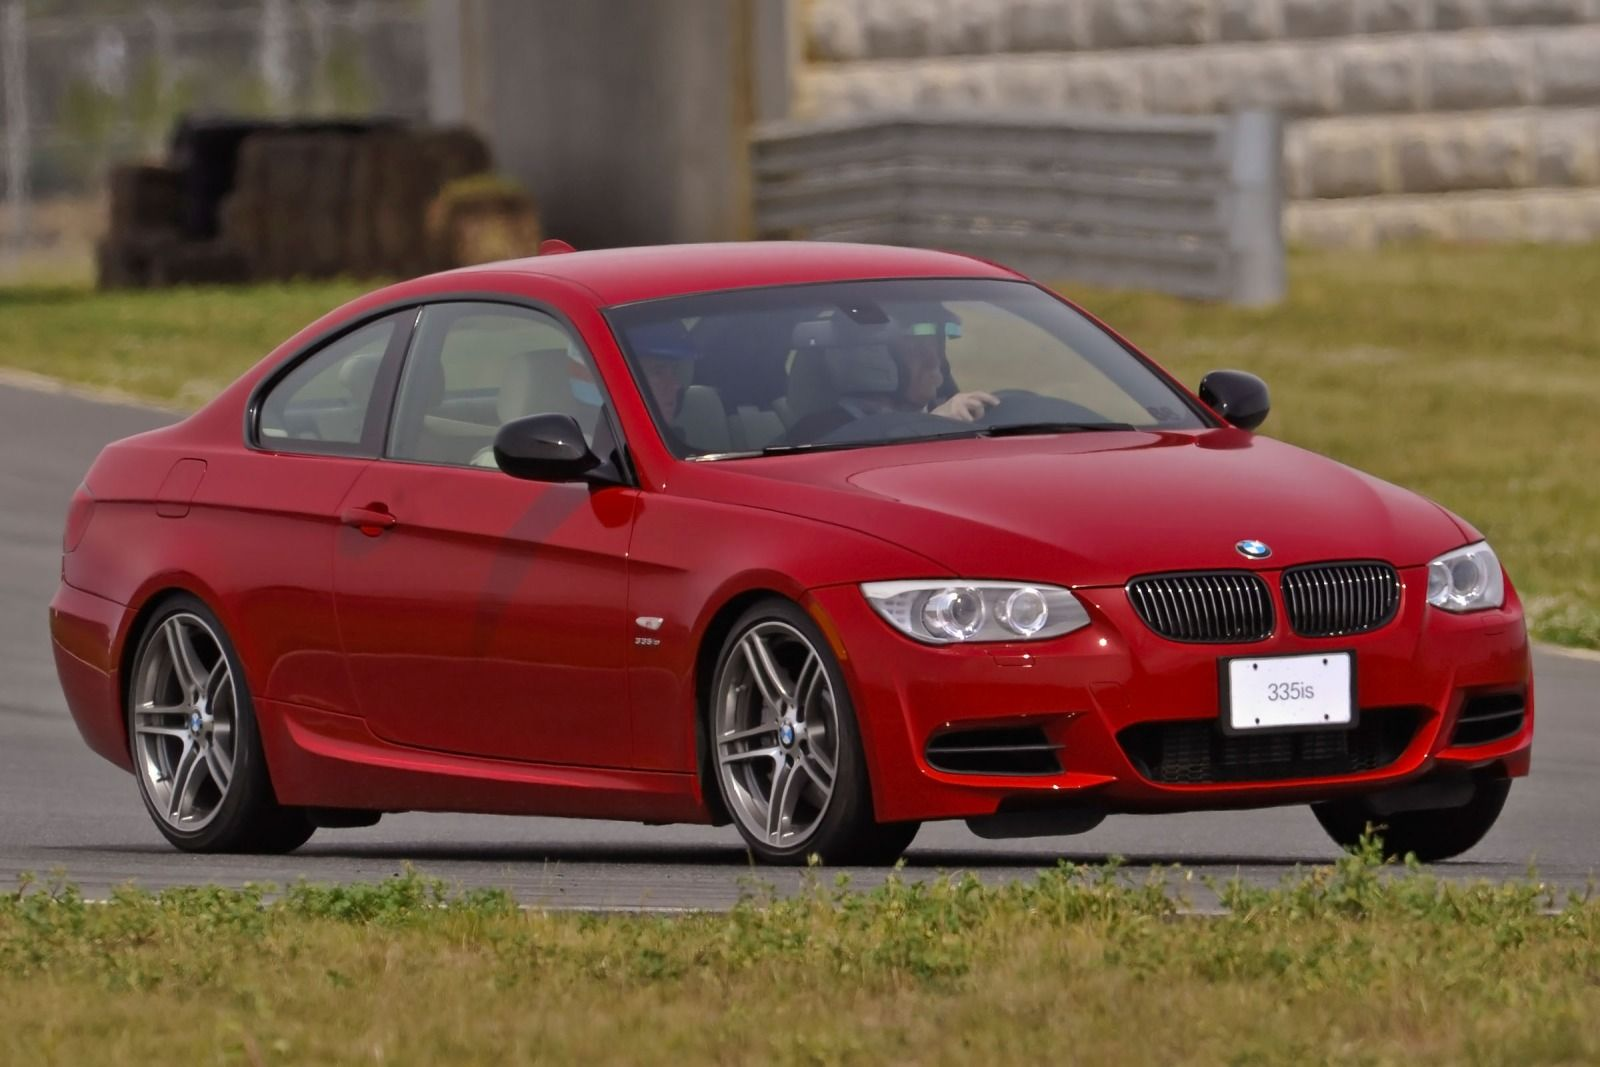 BMW 3 series 335is 2013 photo - 3